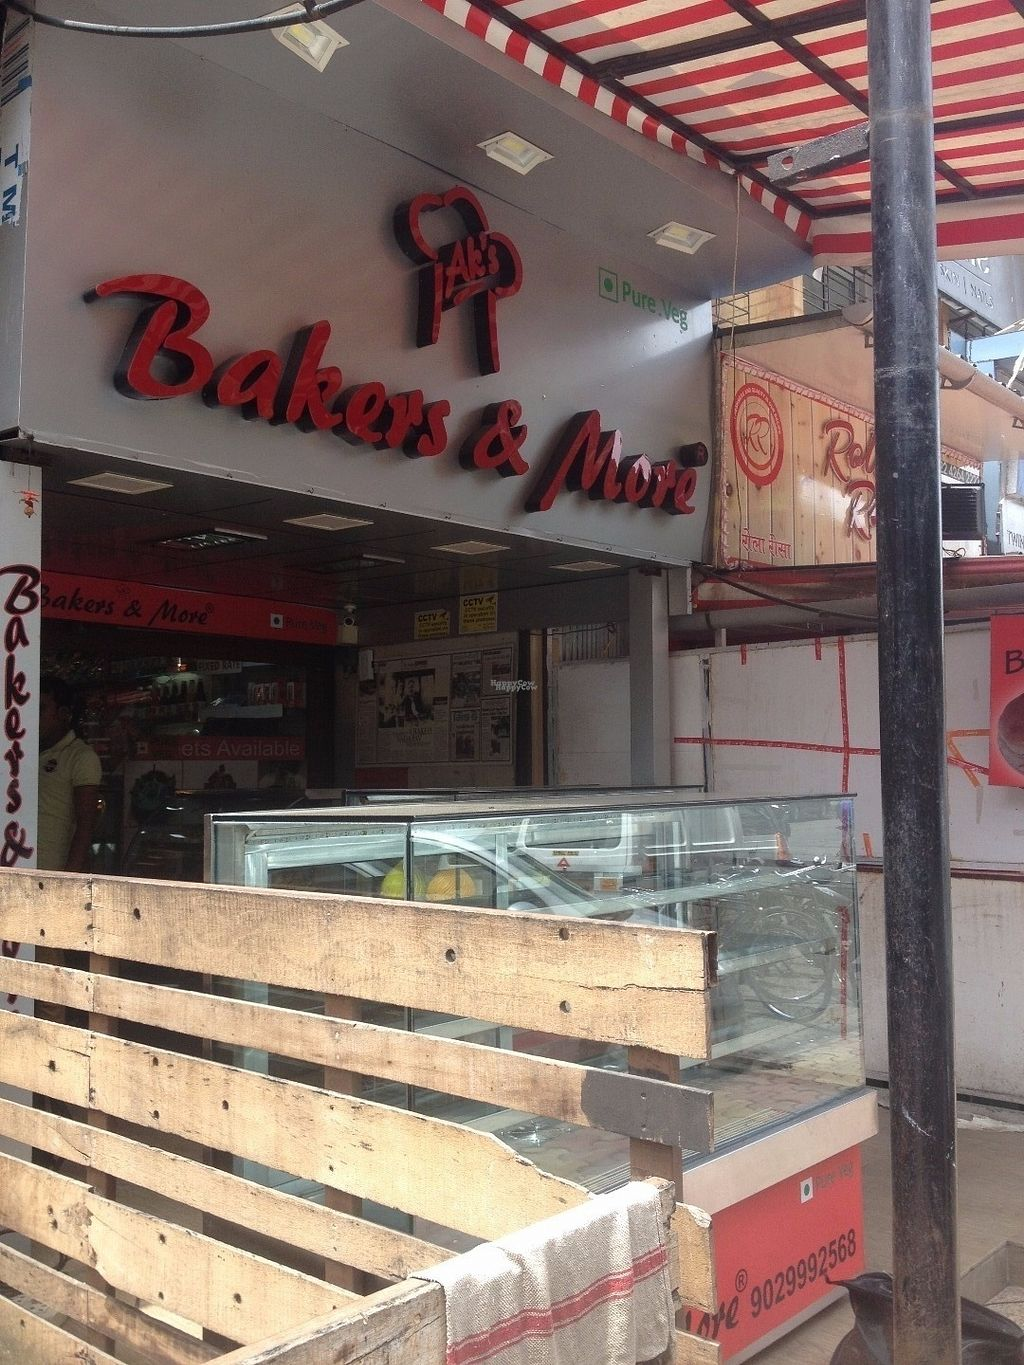 """Photo of Bakers & More  by <a href=""""/members/profile/vegan_ryan"""">vegan_ryan</a> <br/>Exterior <br/> September 9, 2016  - <a href='/contact/abuse/image/79877/174645'>Report</a>"""